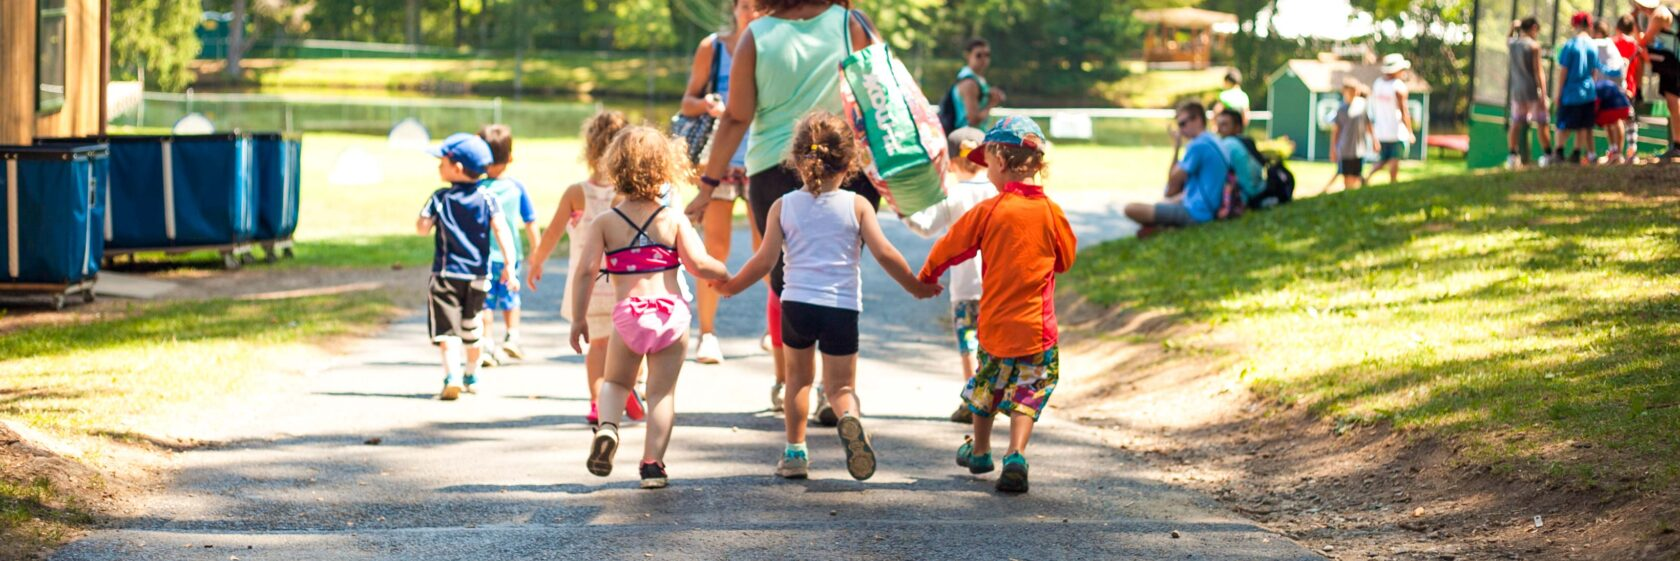 Campers walking together and holding hands.